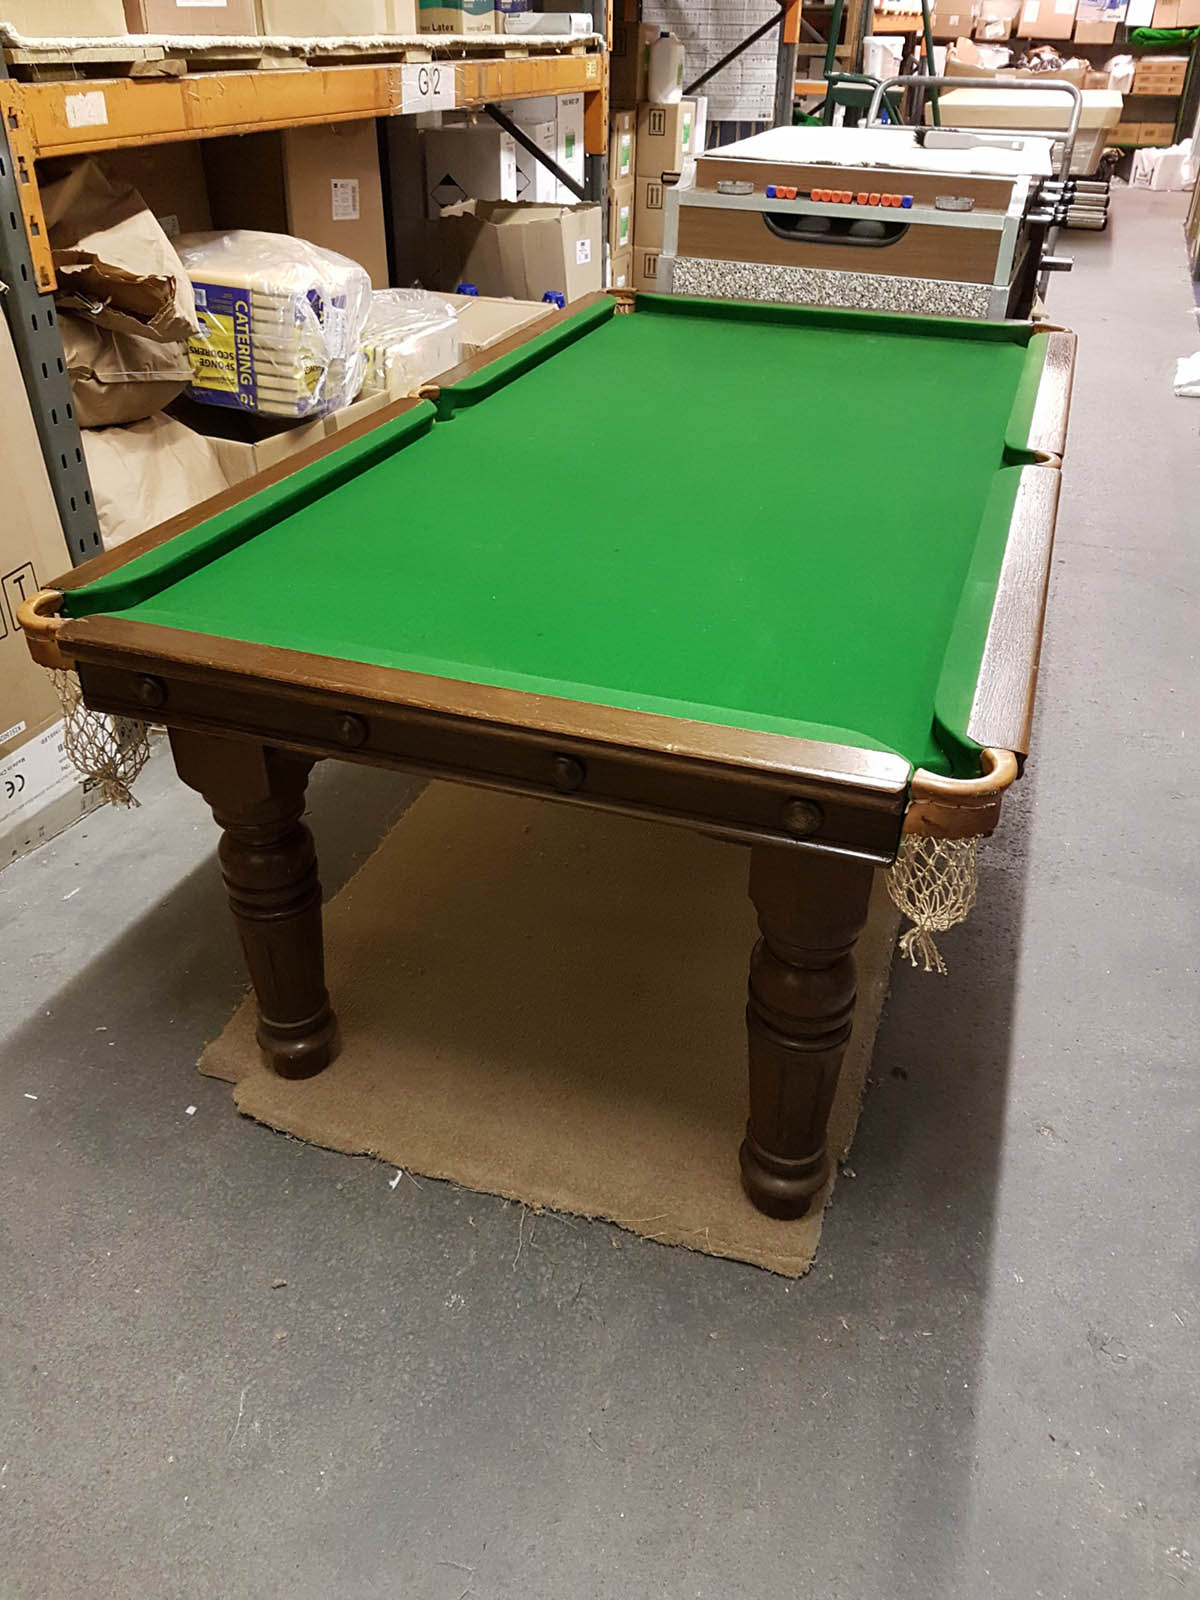 club snooker billard billiards jmc en table riley